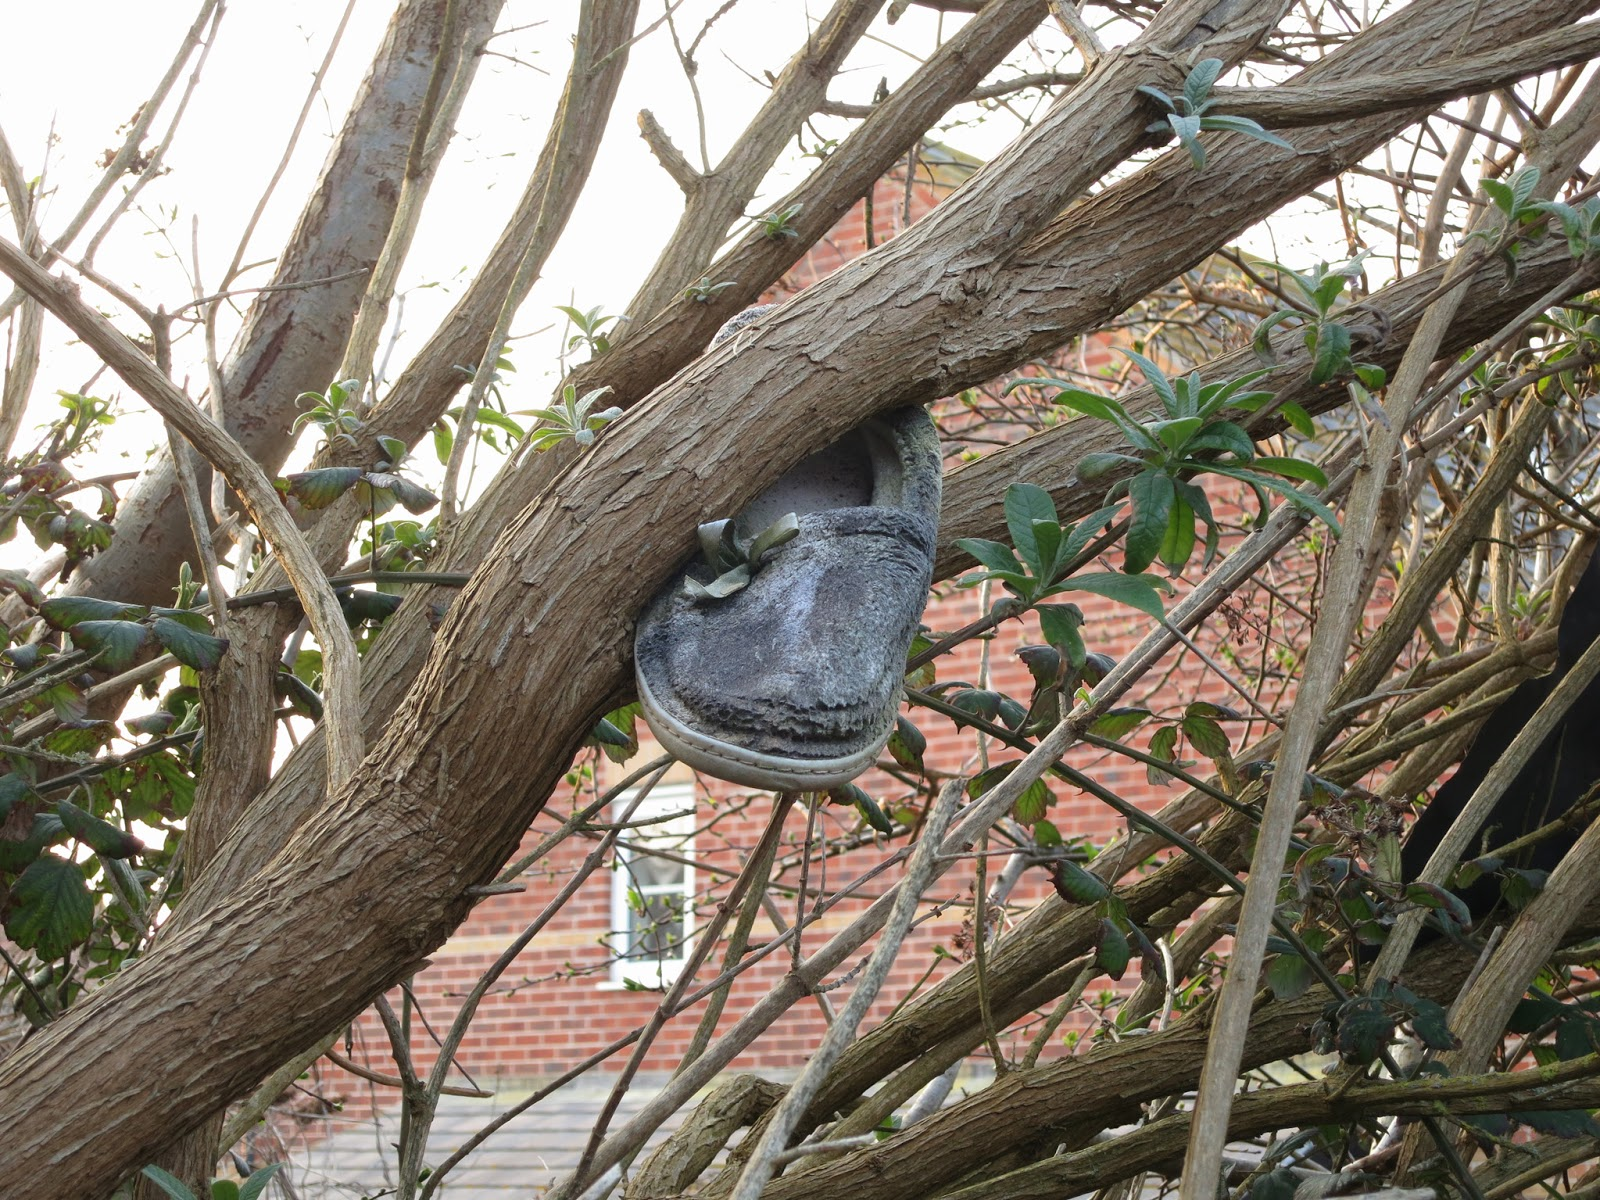 Grey, flat shoe in buddleia tree with bare branches